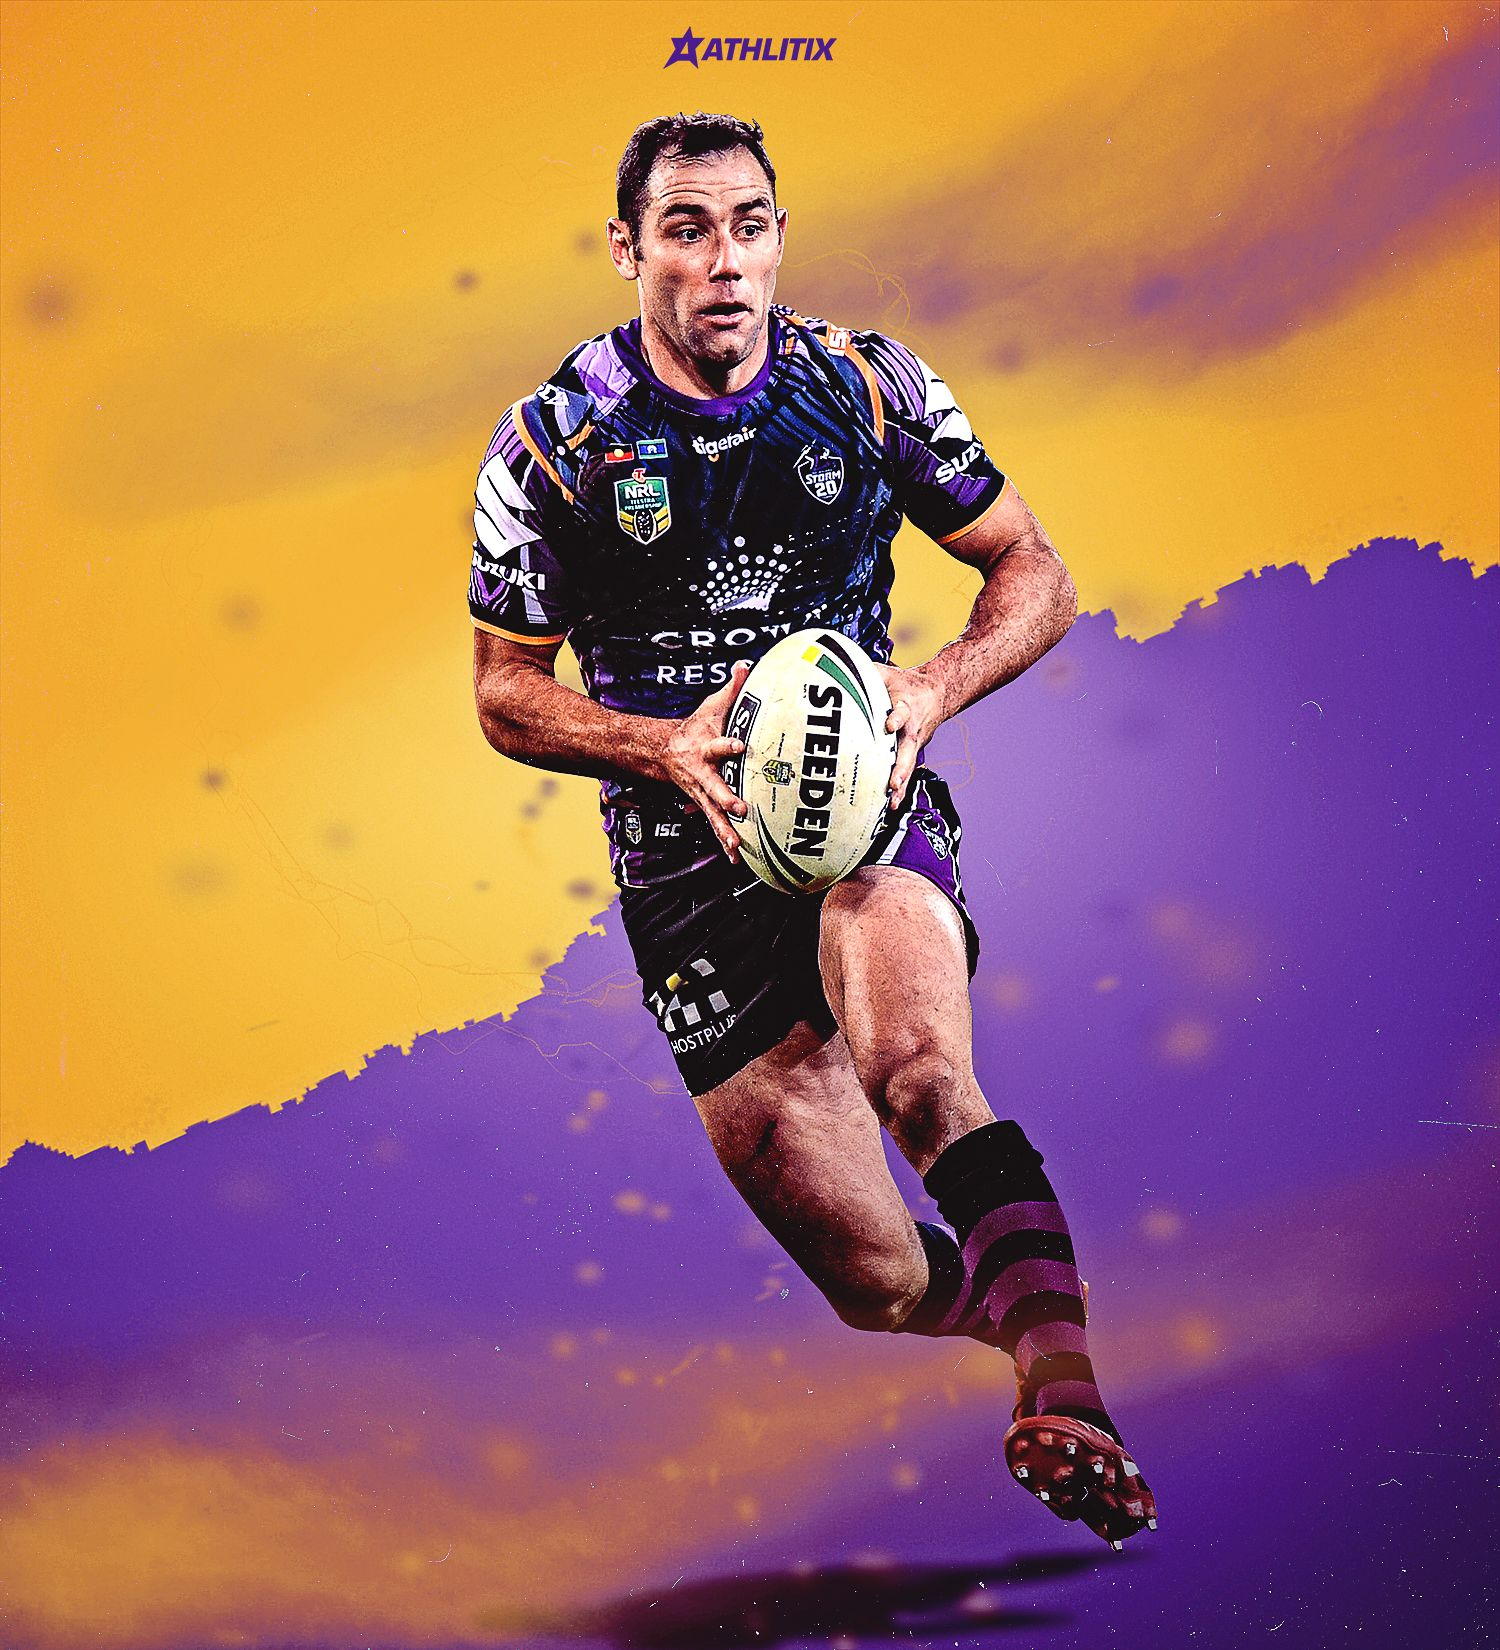 Cameron Smith Nrl Melbourne Storm Nrl Rugby League Cameron Smith